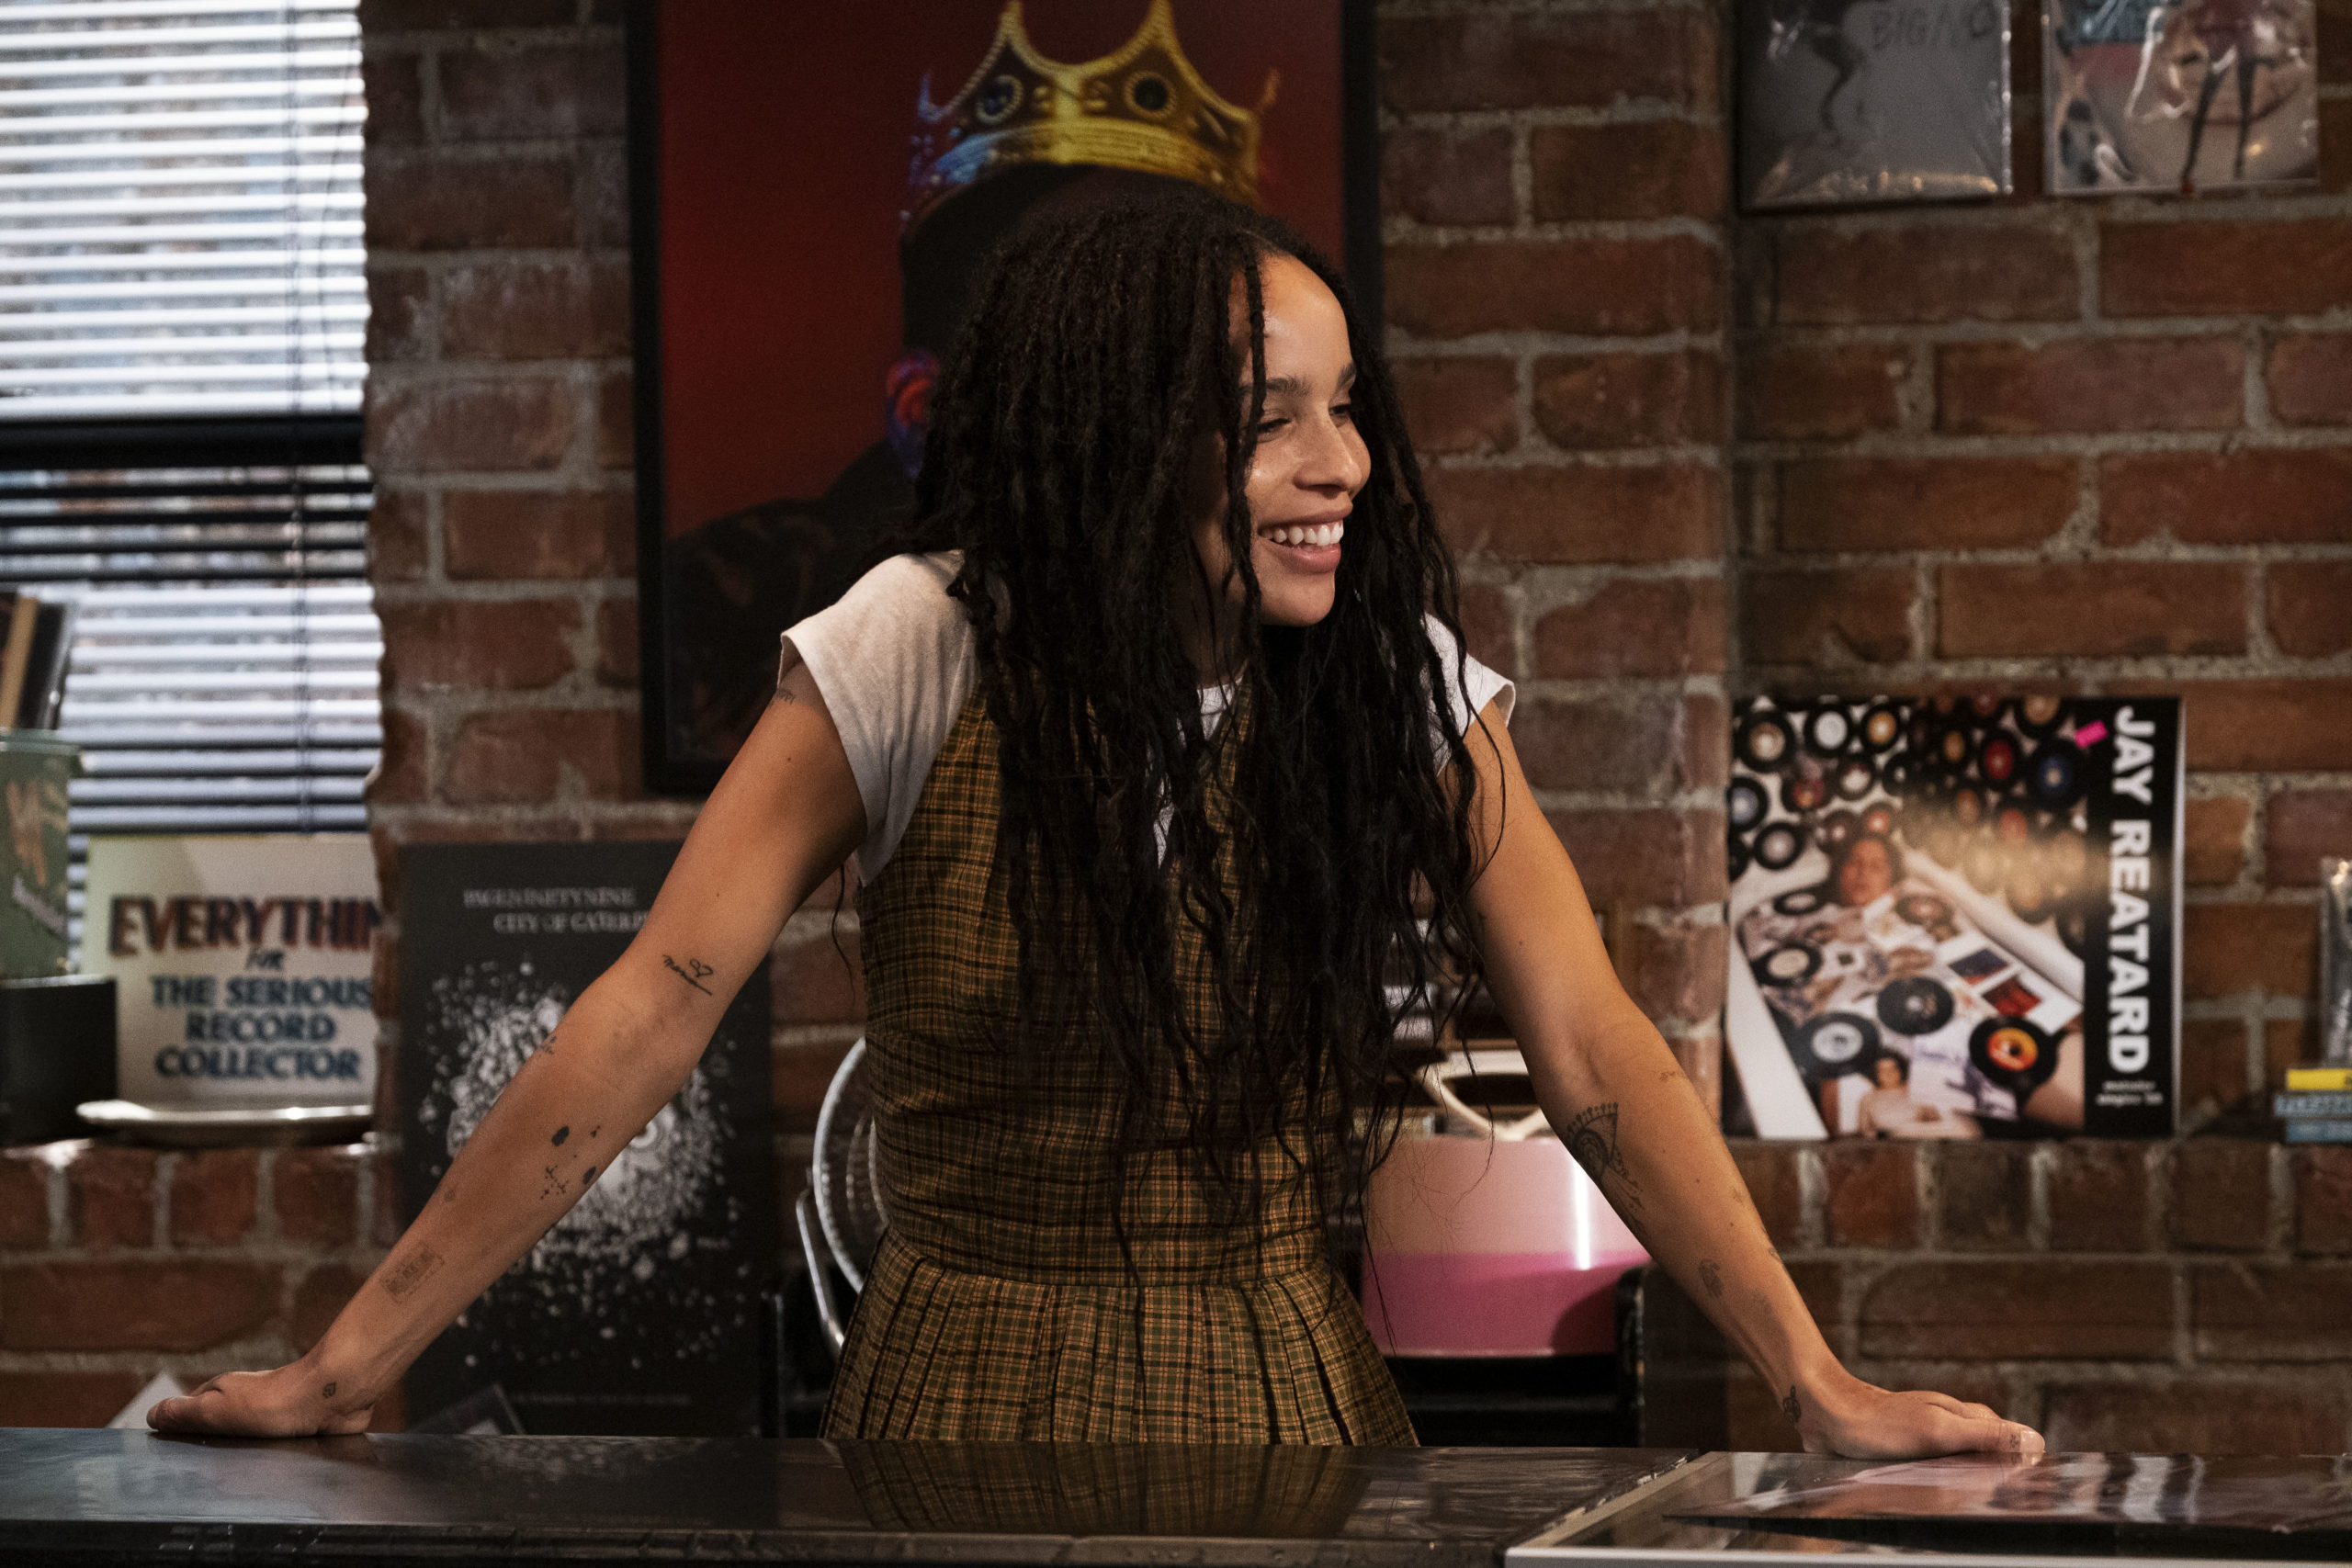 Zoë Kravitz Calls Out Hulu for Canceling 'High Fidelity' After One Season